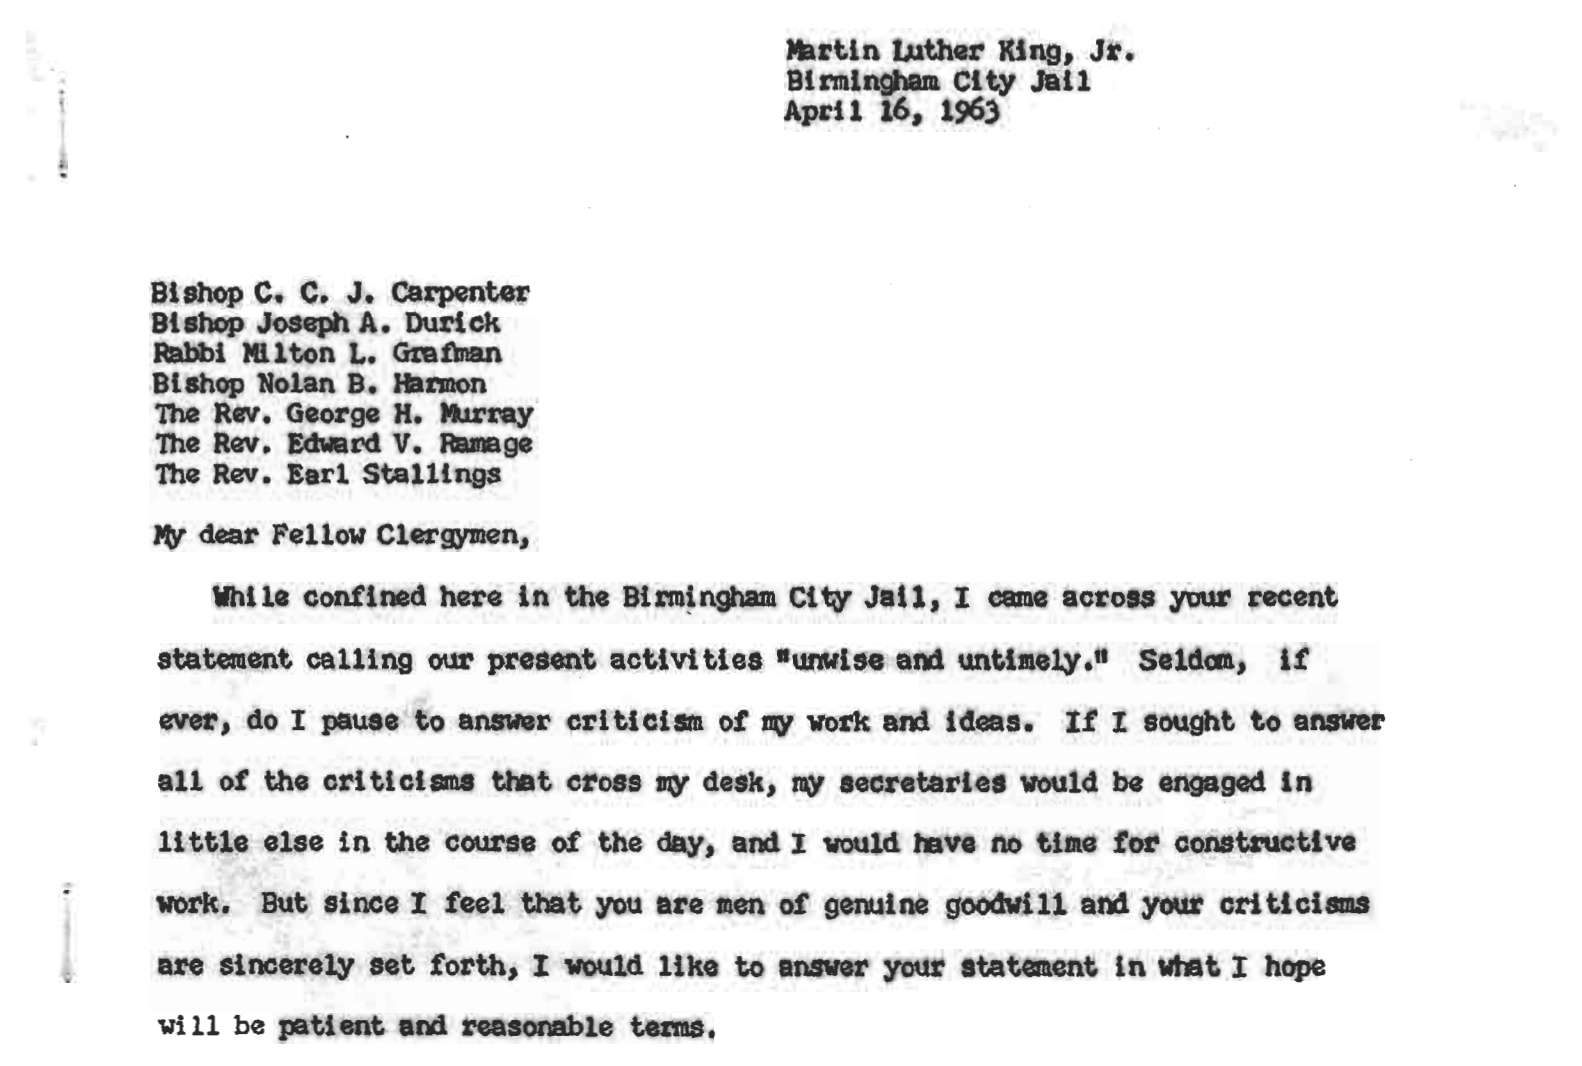 response to mlk letter Letter from birmingham city jail - dr martin luther king, jr april 16, 1963 my dear fellow clergymen while confined here in the birmingham city jail, i came across your recent statement calling our present activities unwise and untimely seldom, if ever, do i pause to answer criticism of my work and ideasbut since i.